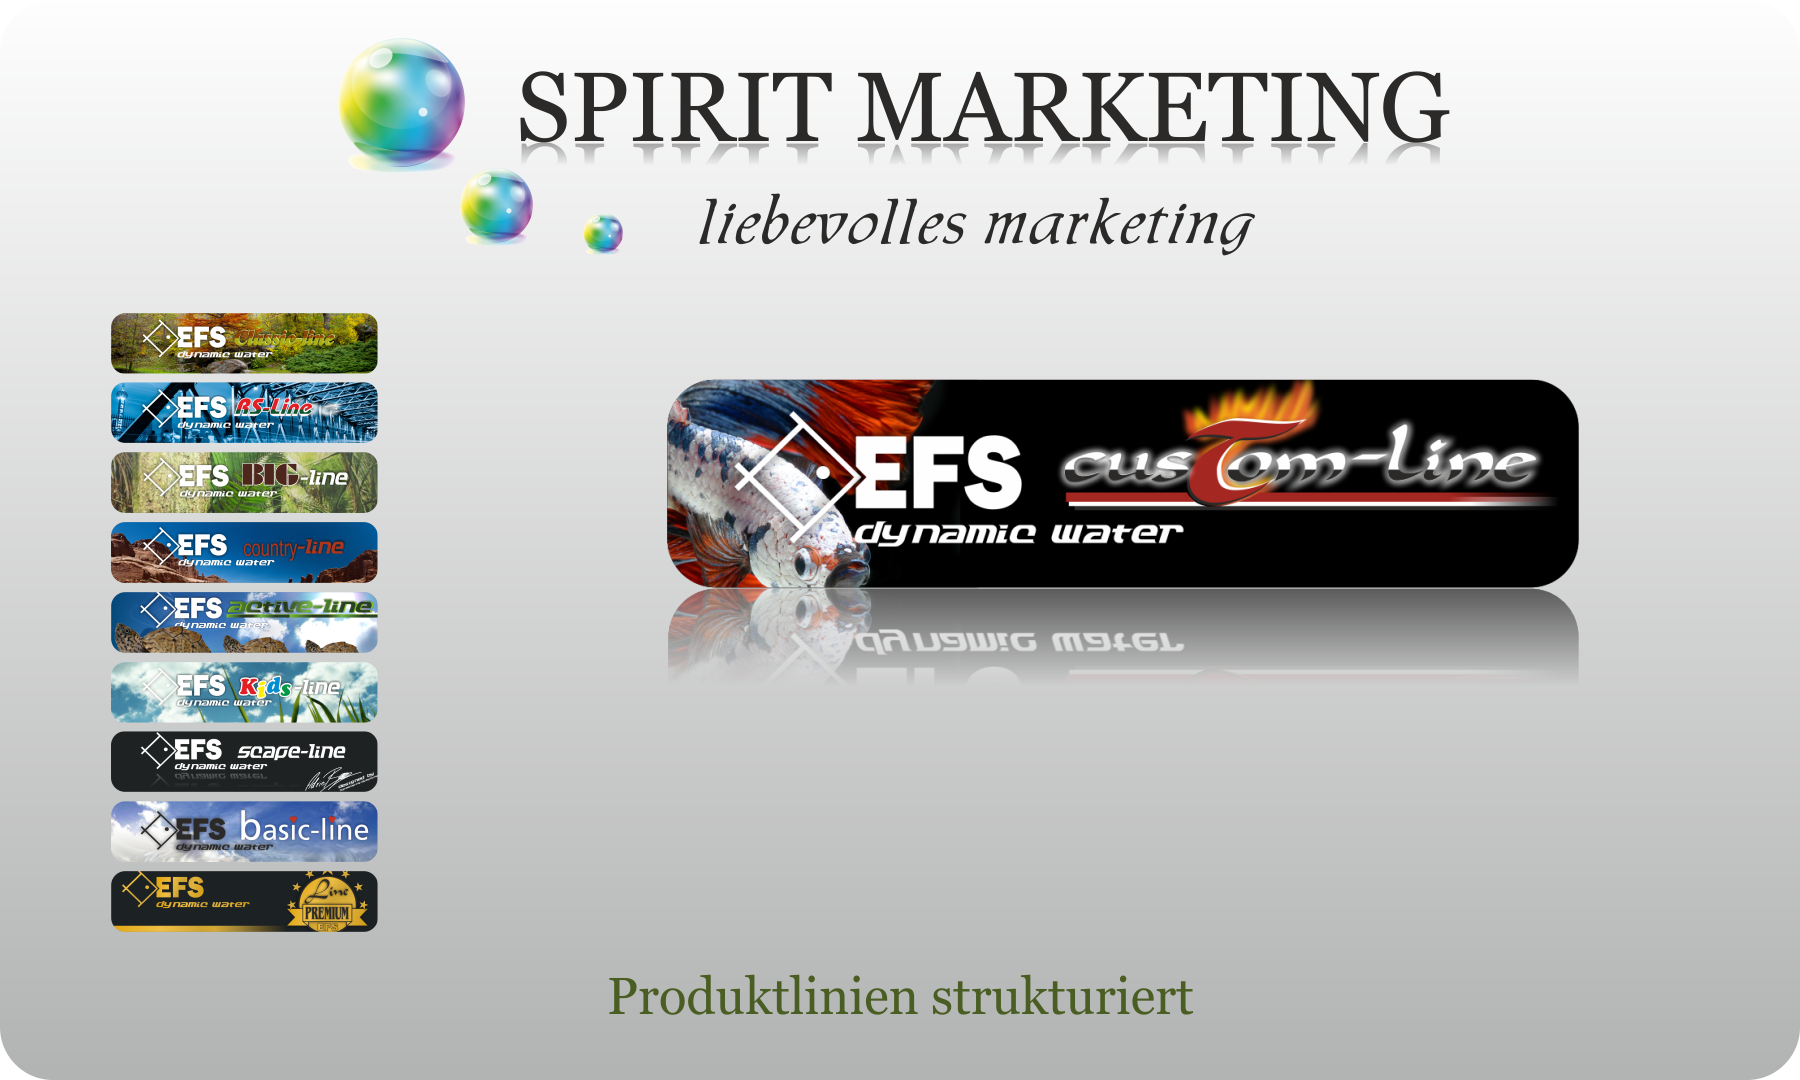 SPIRIT MARKETING - Produktlinien strukturiert